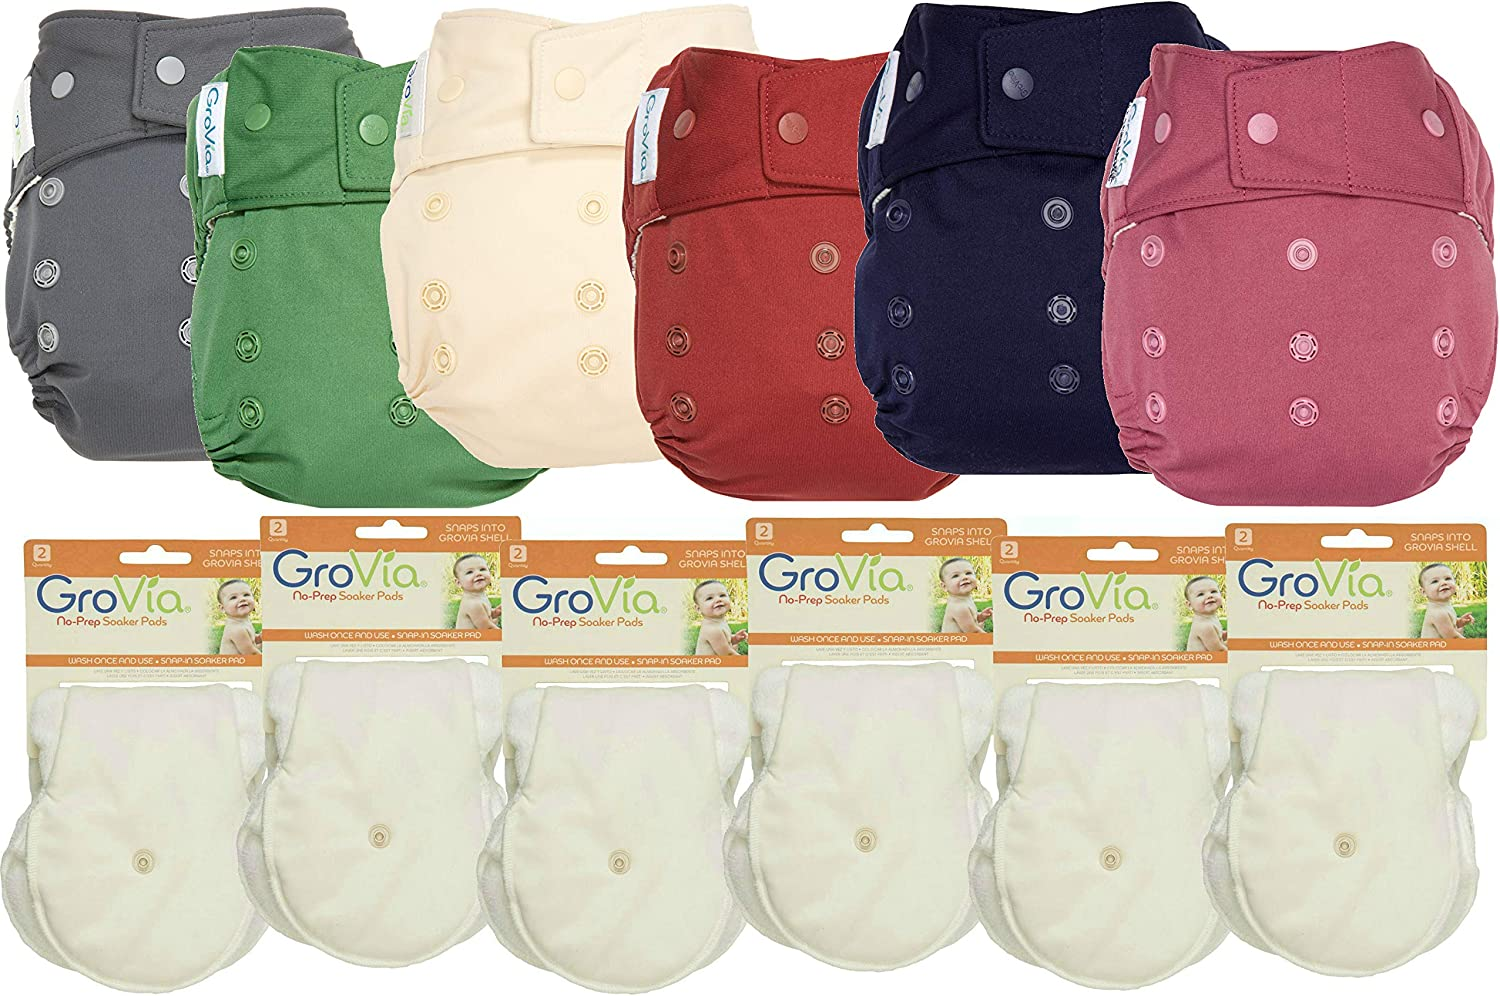 Color Mix 8 Hook /& Loop GroVia Experience Package 4 No Prep Soaker Pads 2 Shells